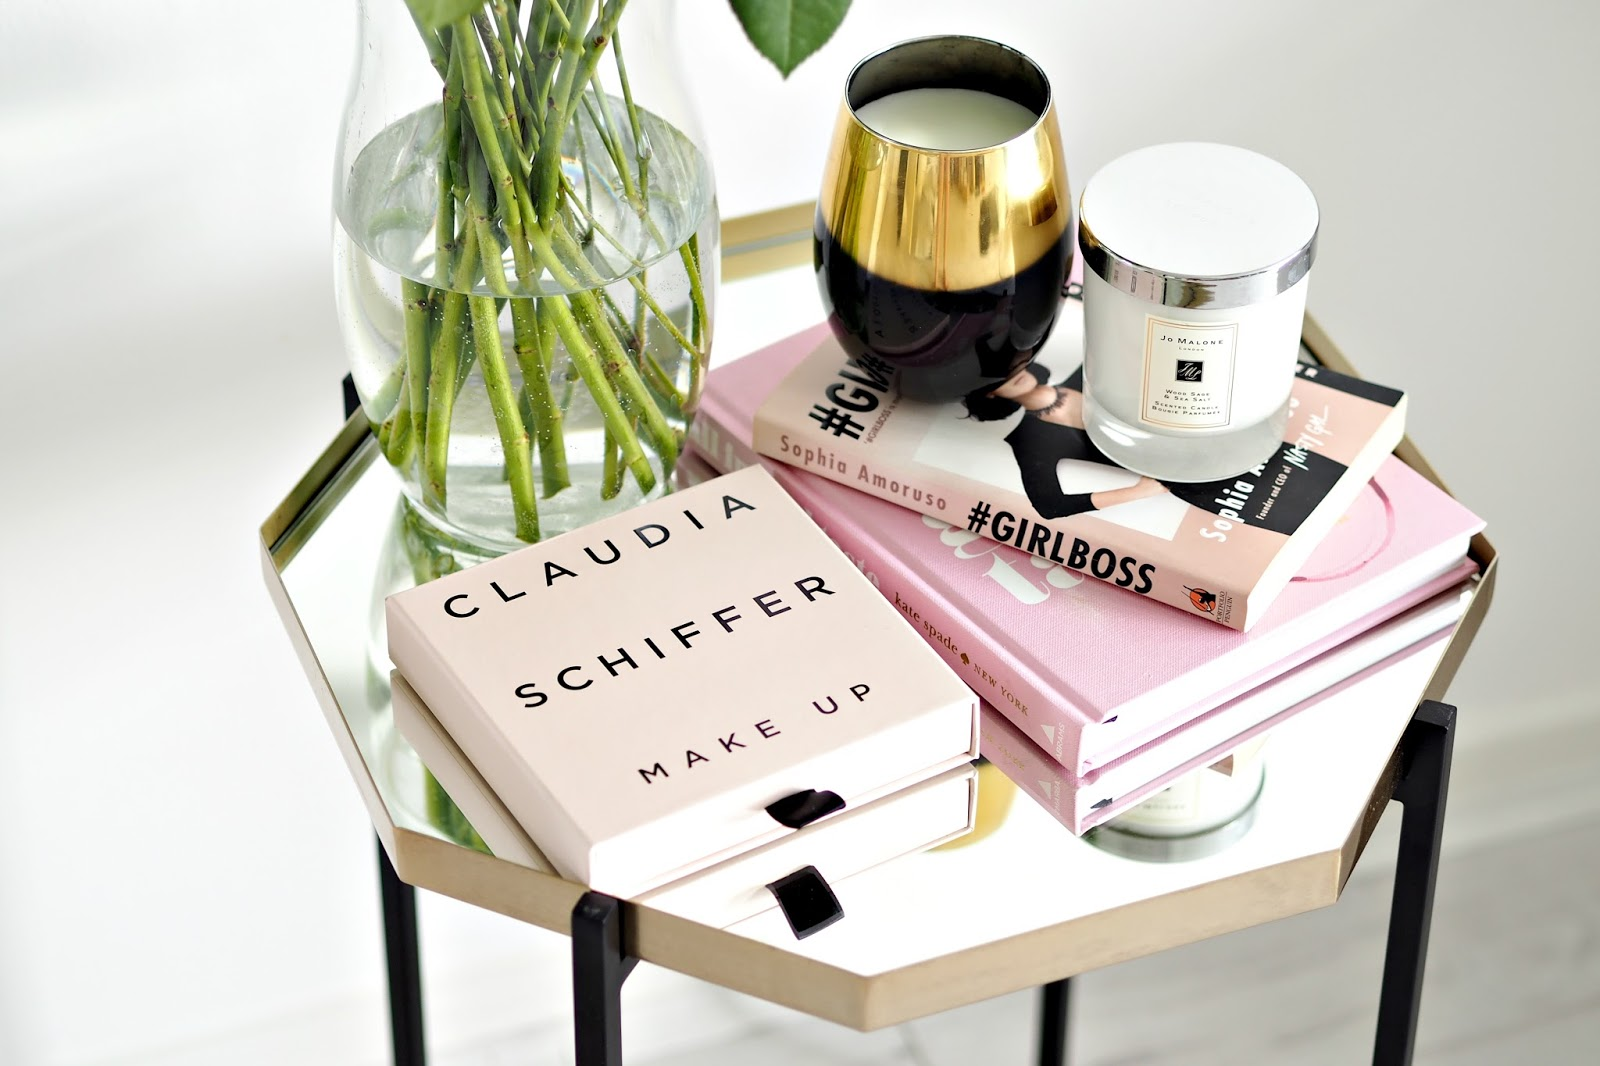 Claudia Schiffer Blusher and Lipstick Review